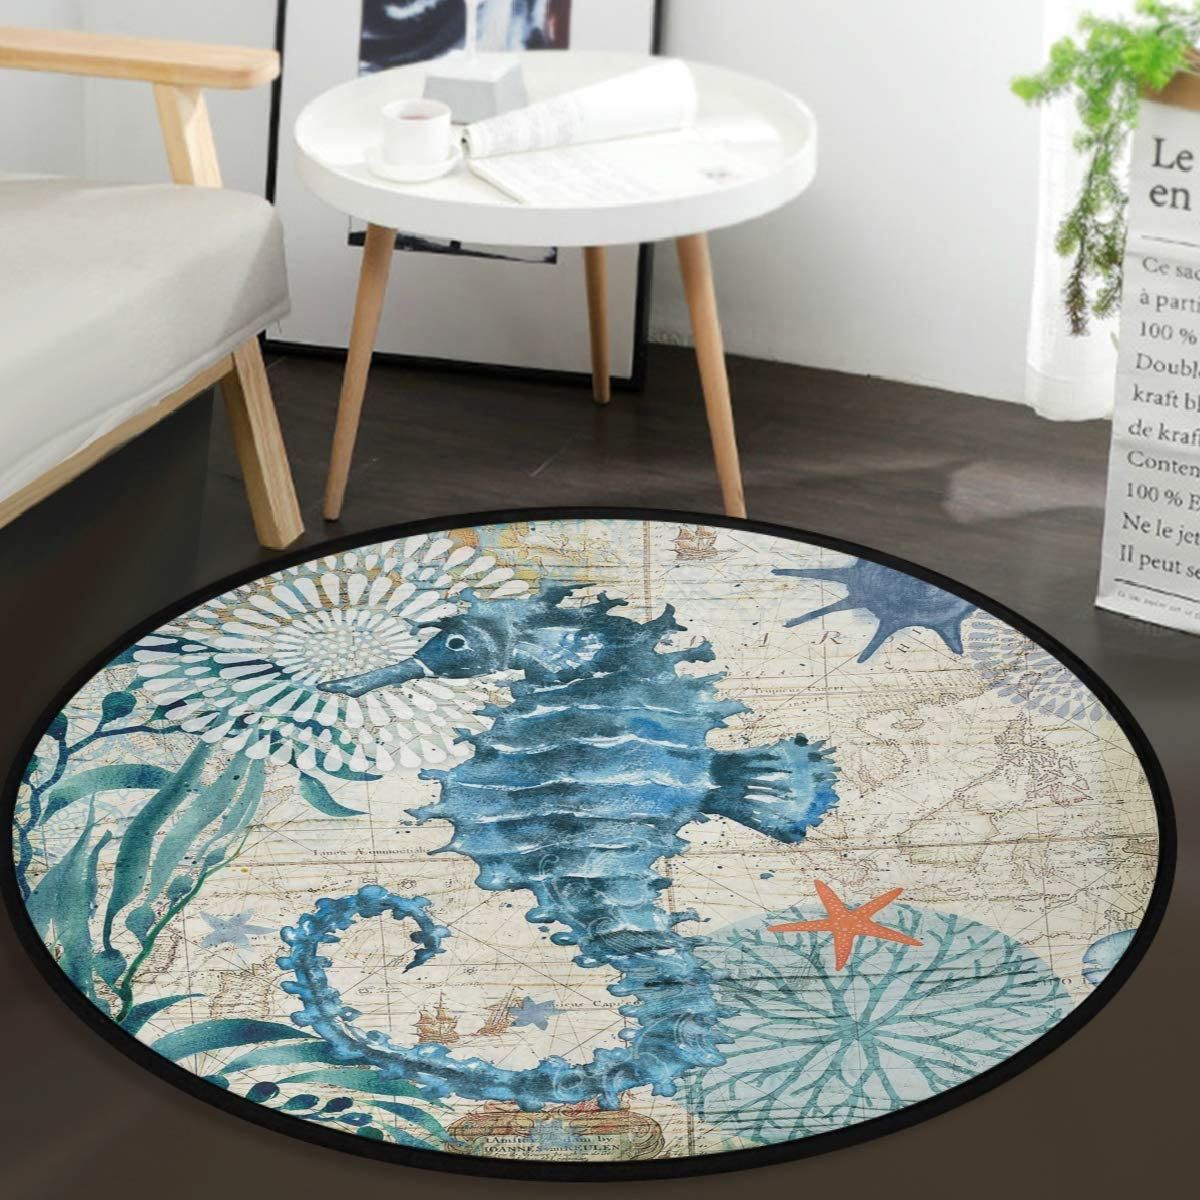 Vdsrup Ocean Sea Horse Doormat Nautical Seahorse Starfish Round Floor Mat Non Slip Carpet Yoga Mat Rug for Entryway Living Room Bedroom Home Decor 3